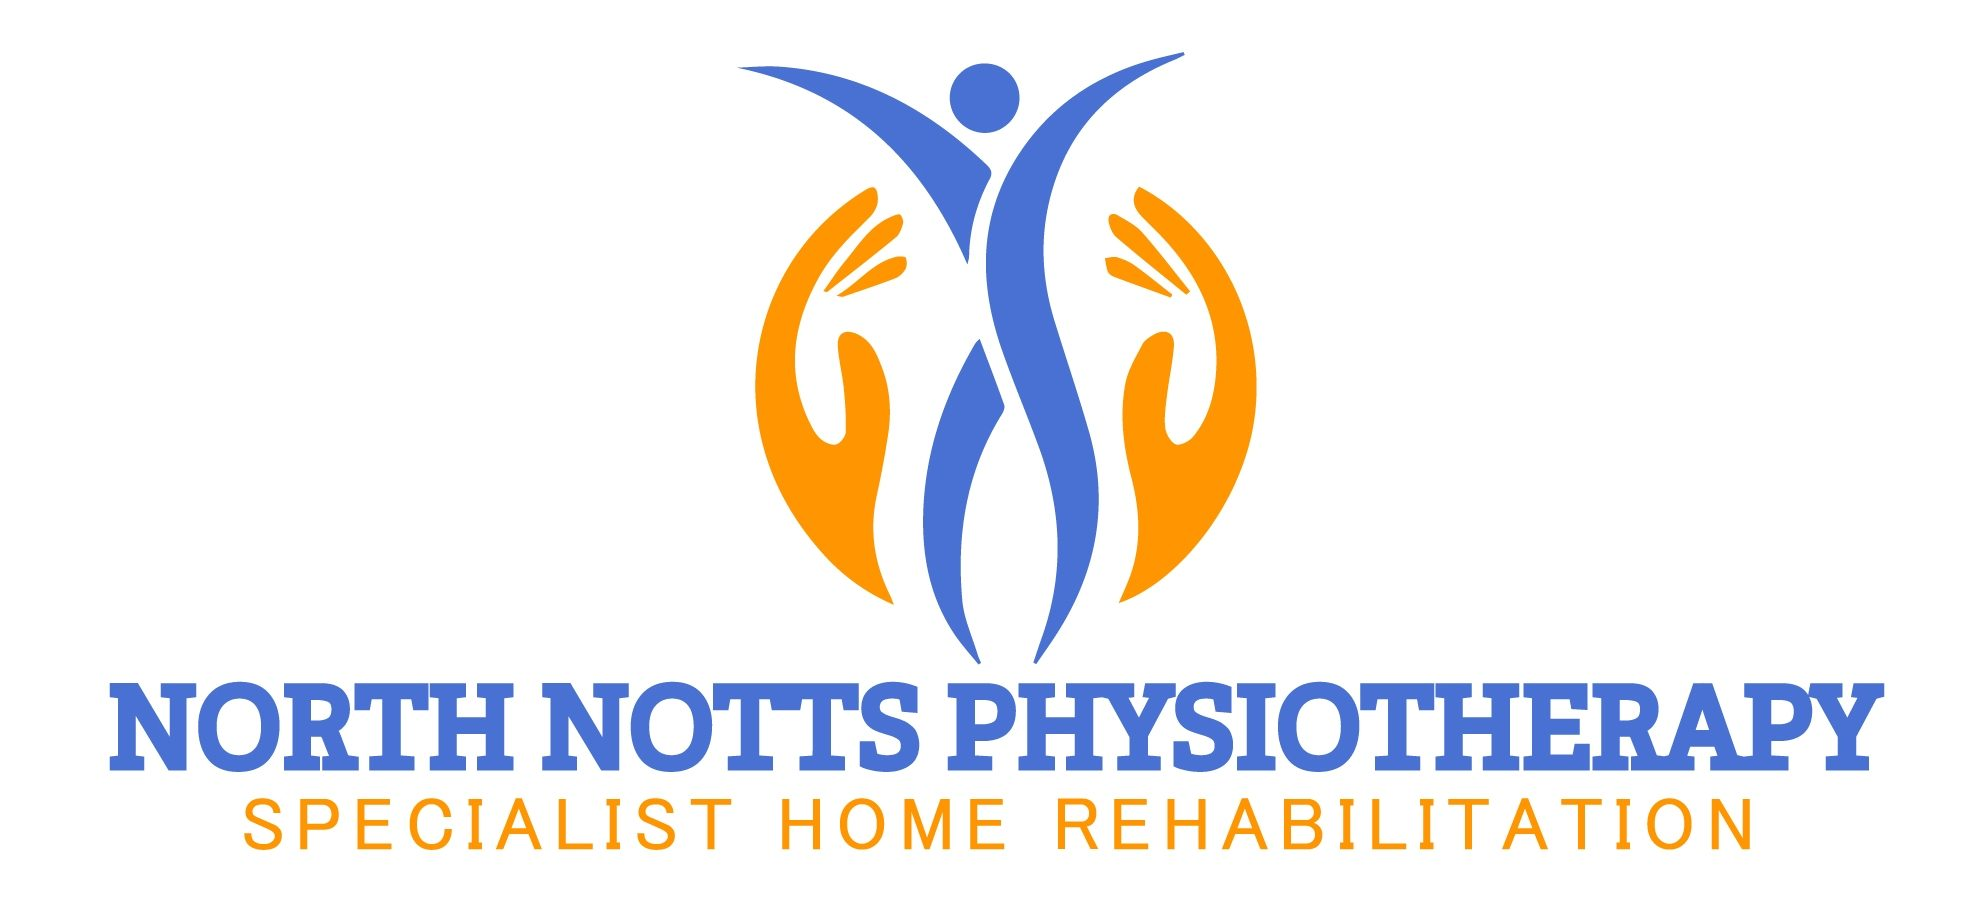 North Notts Physiotherapy